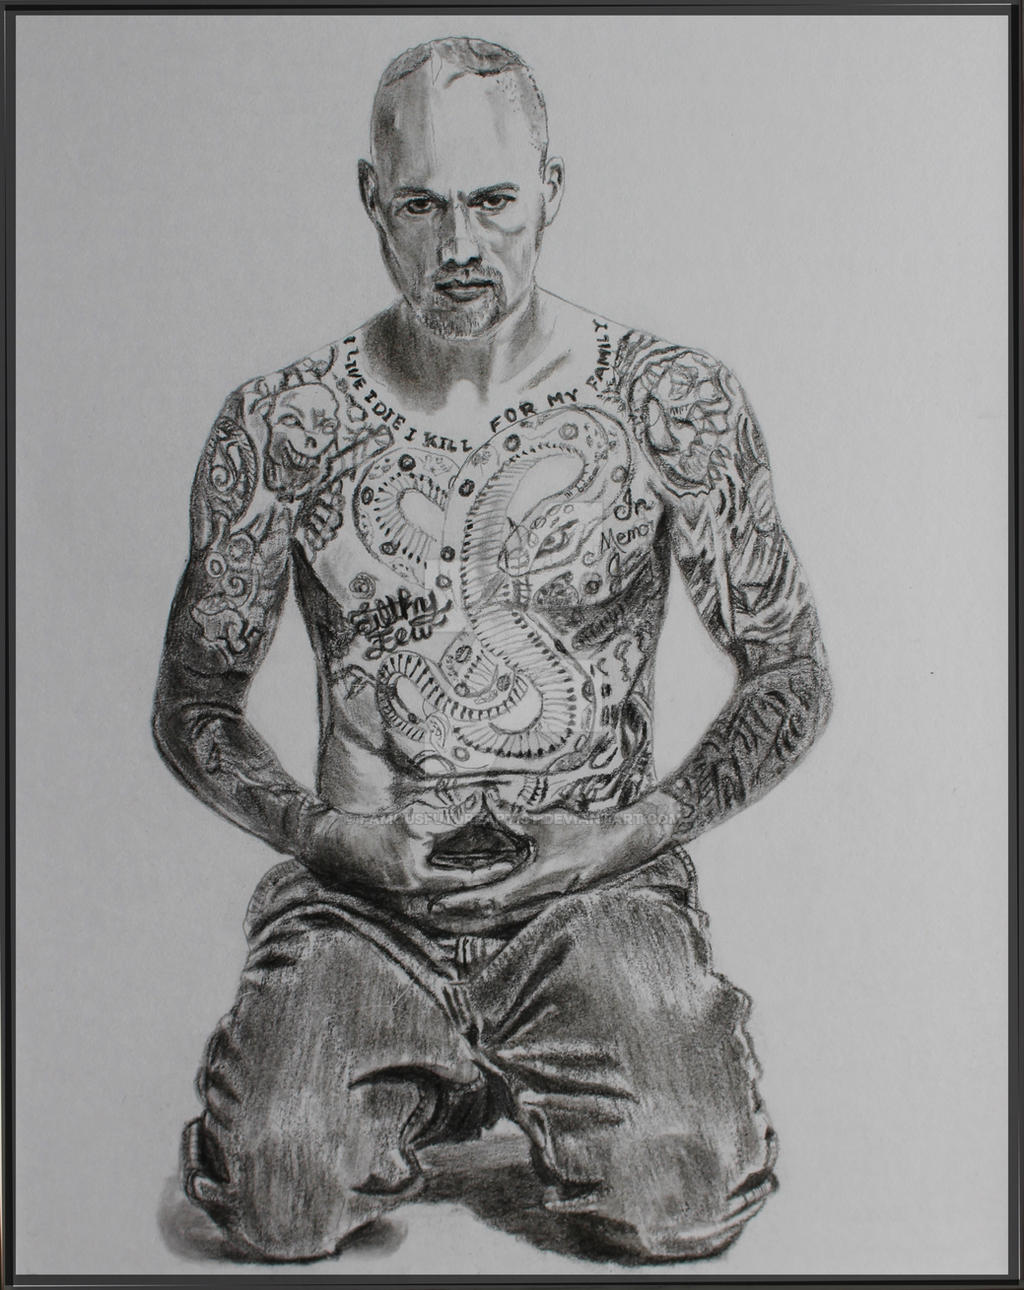 david labrava wifedavid labrava facebook, david labrava instagram, david labrava tattoo artist, david labrava, david labrava twitter, david labrava wife, david labrava tattoo, david labrava becoming a son, david labrava imdb, david labrava movie, david labrava sons of anarchy, david labrava tumblr, david labrava net worth, david labrava bio, david labrava hell angel, david labrava ethnicity, david labrava book, david labrava married, david labrava interview